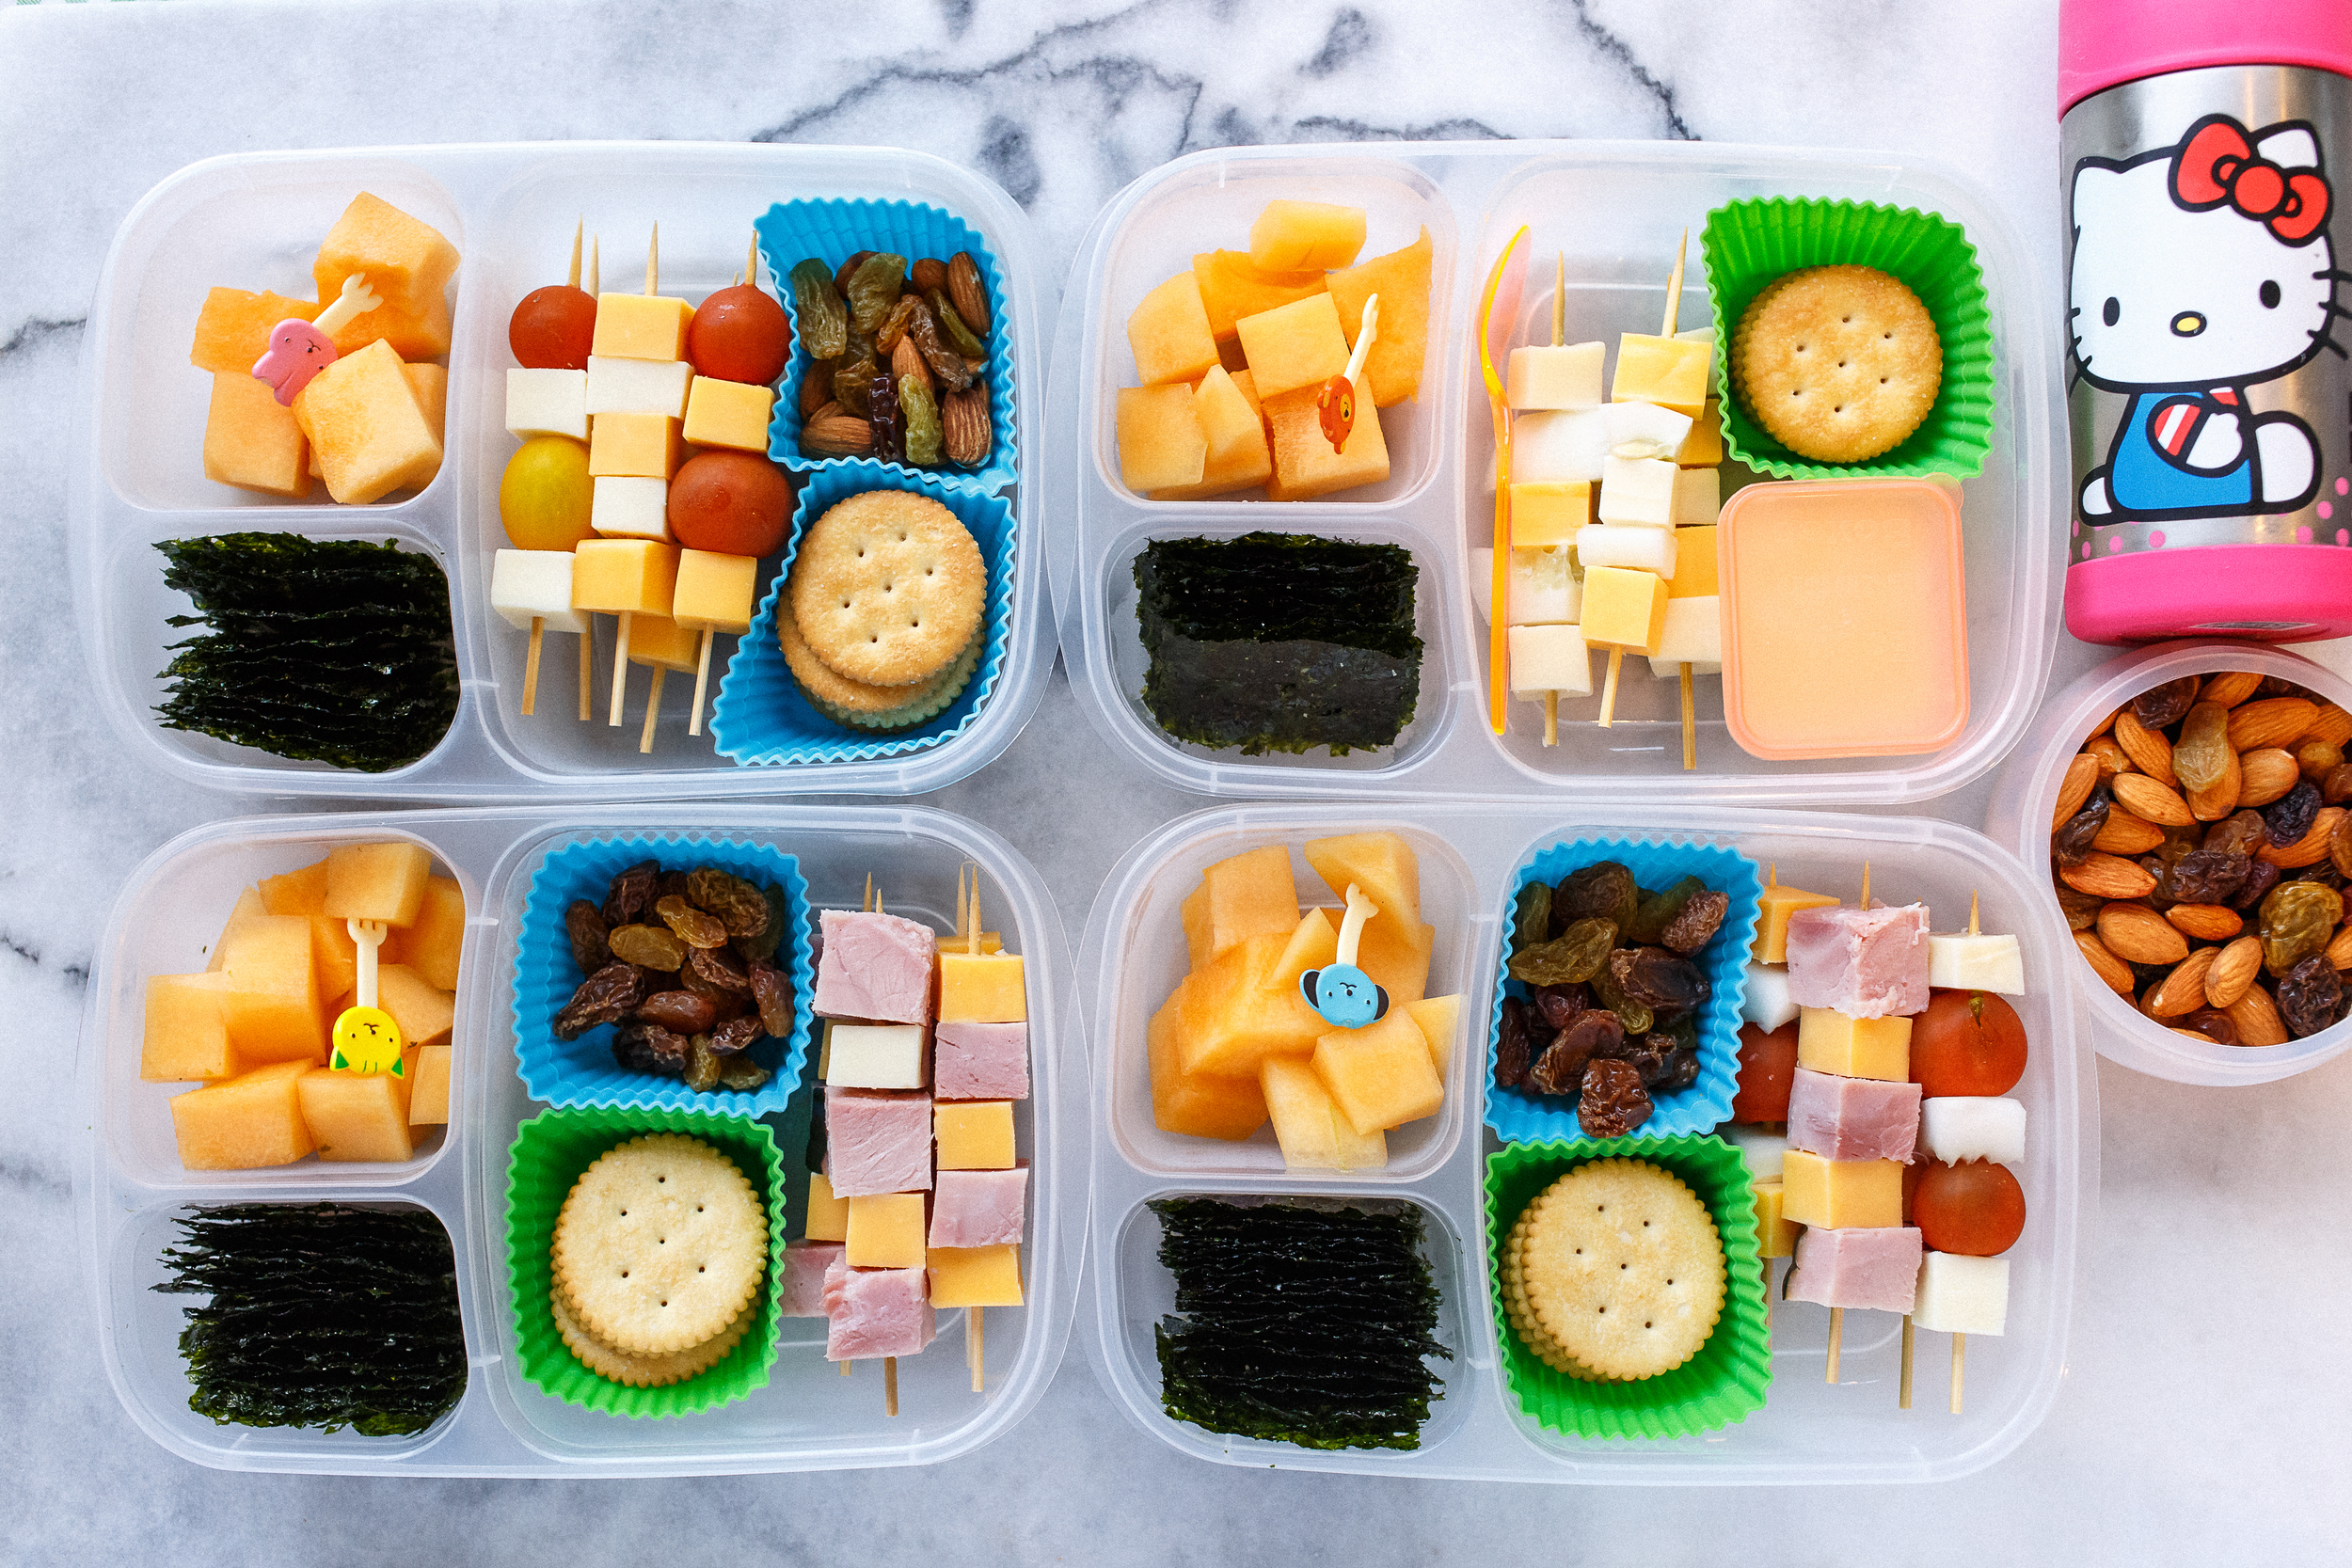 Little lunch skewers with a variety of ham, cheeses, tomatoes, and cucumbers, depending on who likes what. With raisins, seaweed snacks and melon. And the little one now has an extra side of nuts & raisins, and a thermos cup of milk.